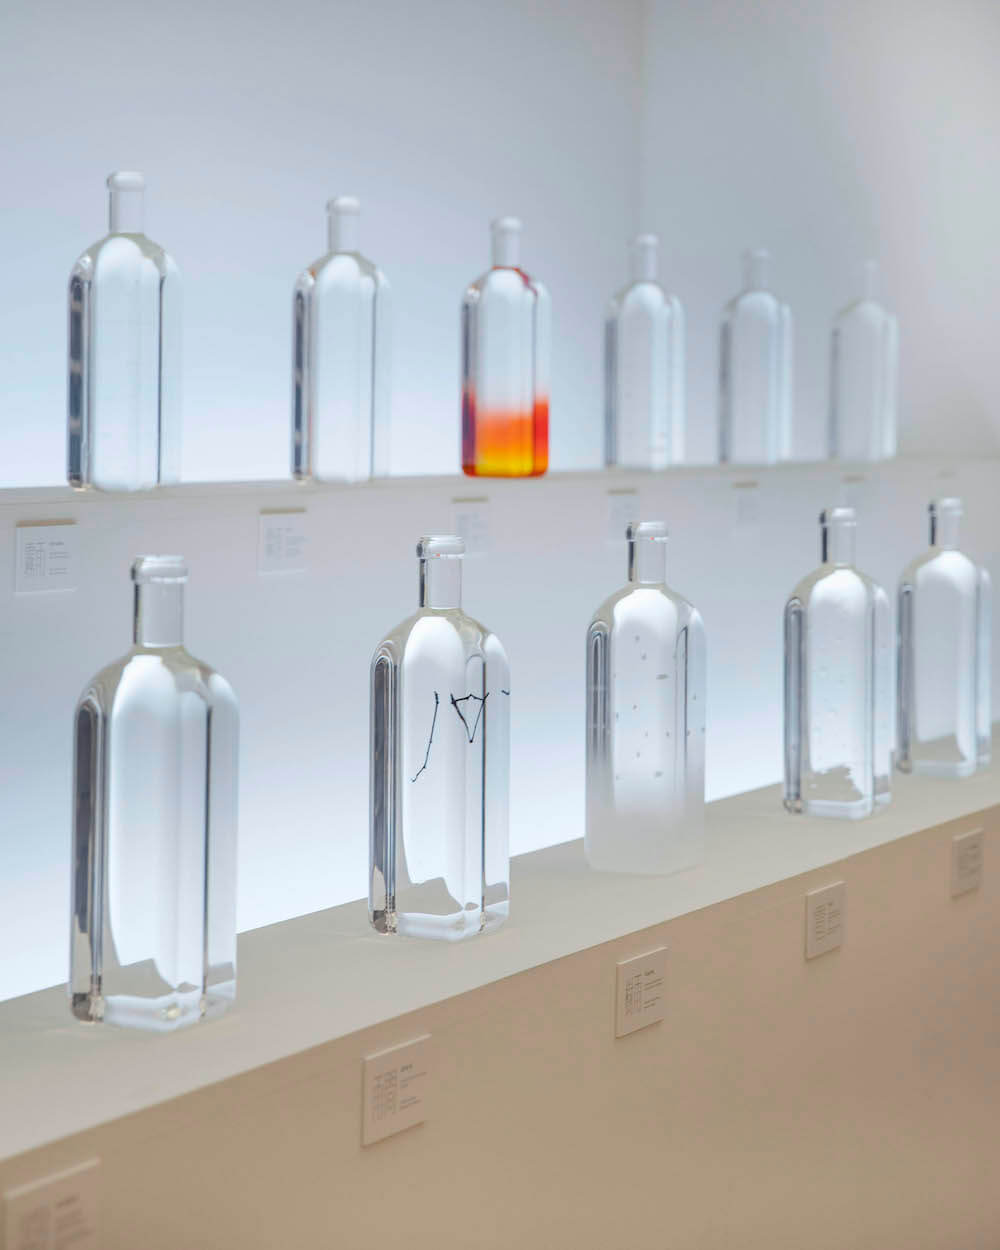 A close-up look at the Rain Bottle installation